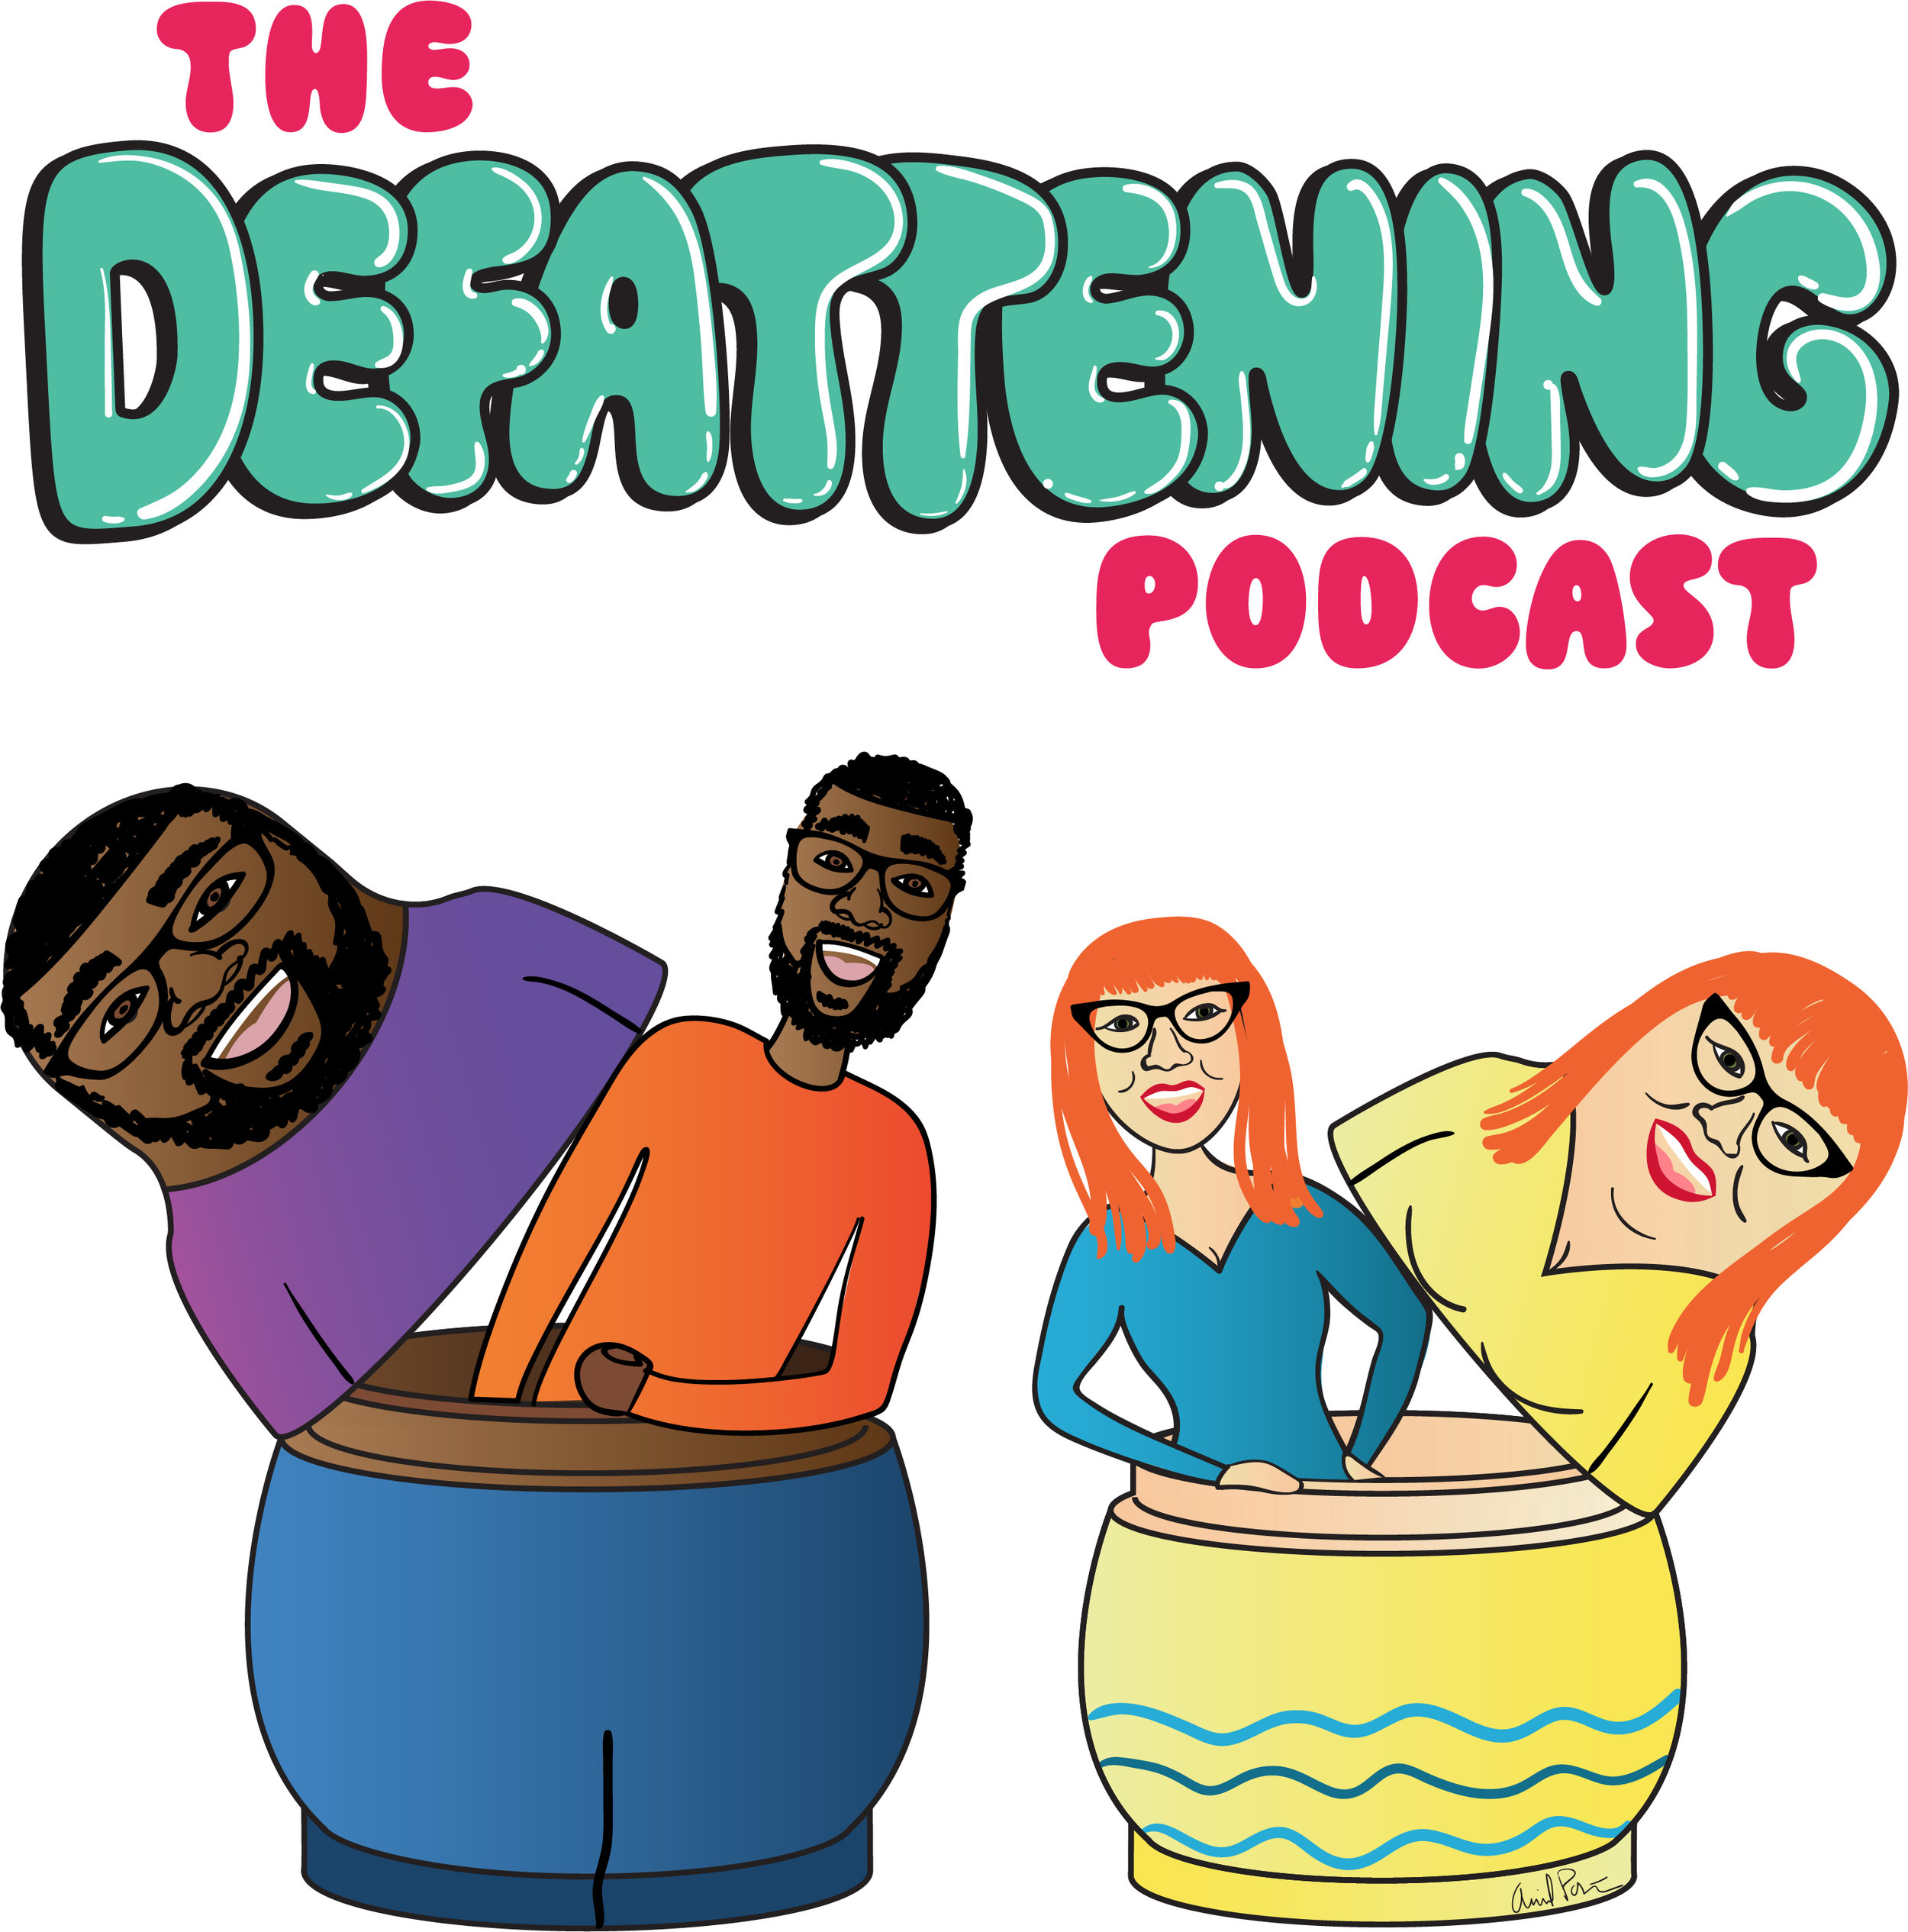 The Defattening Podcast